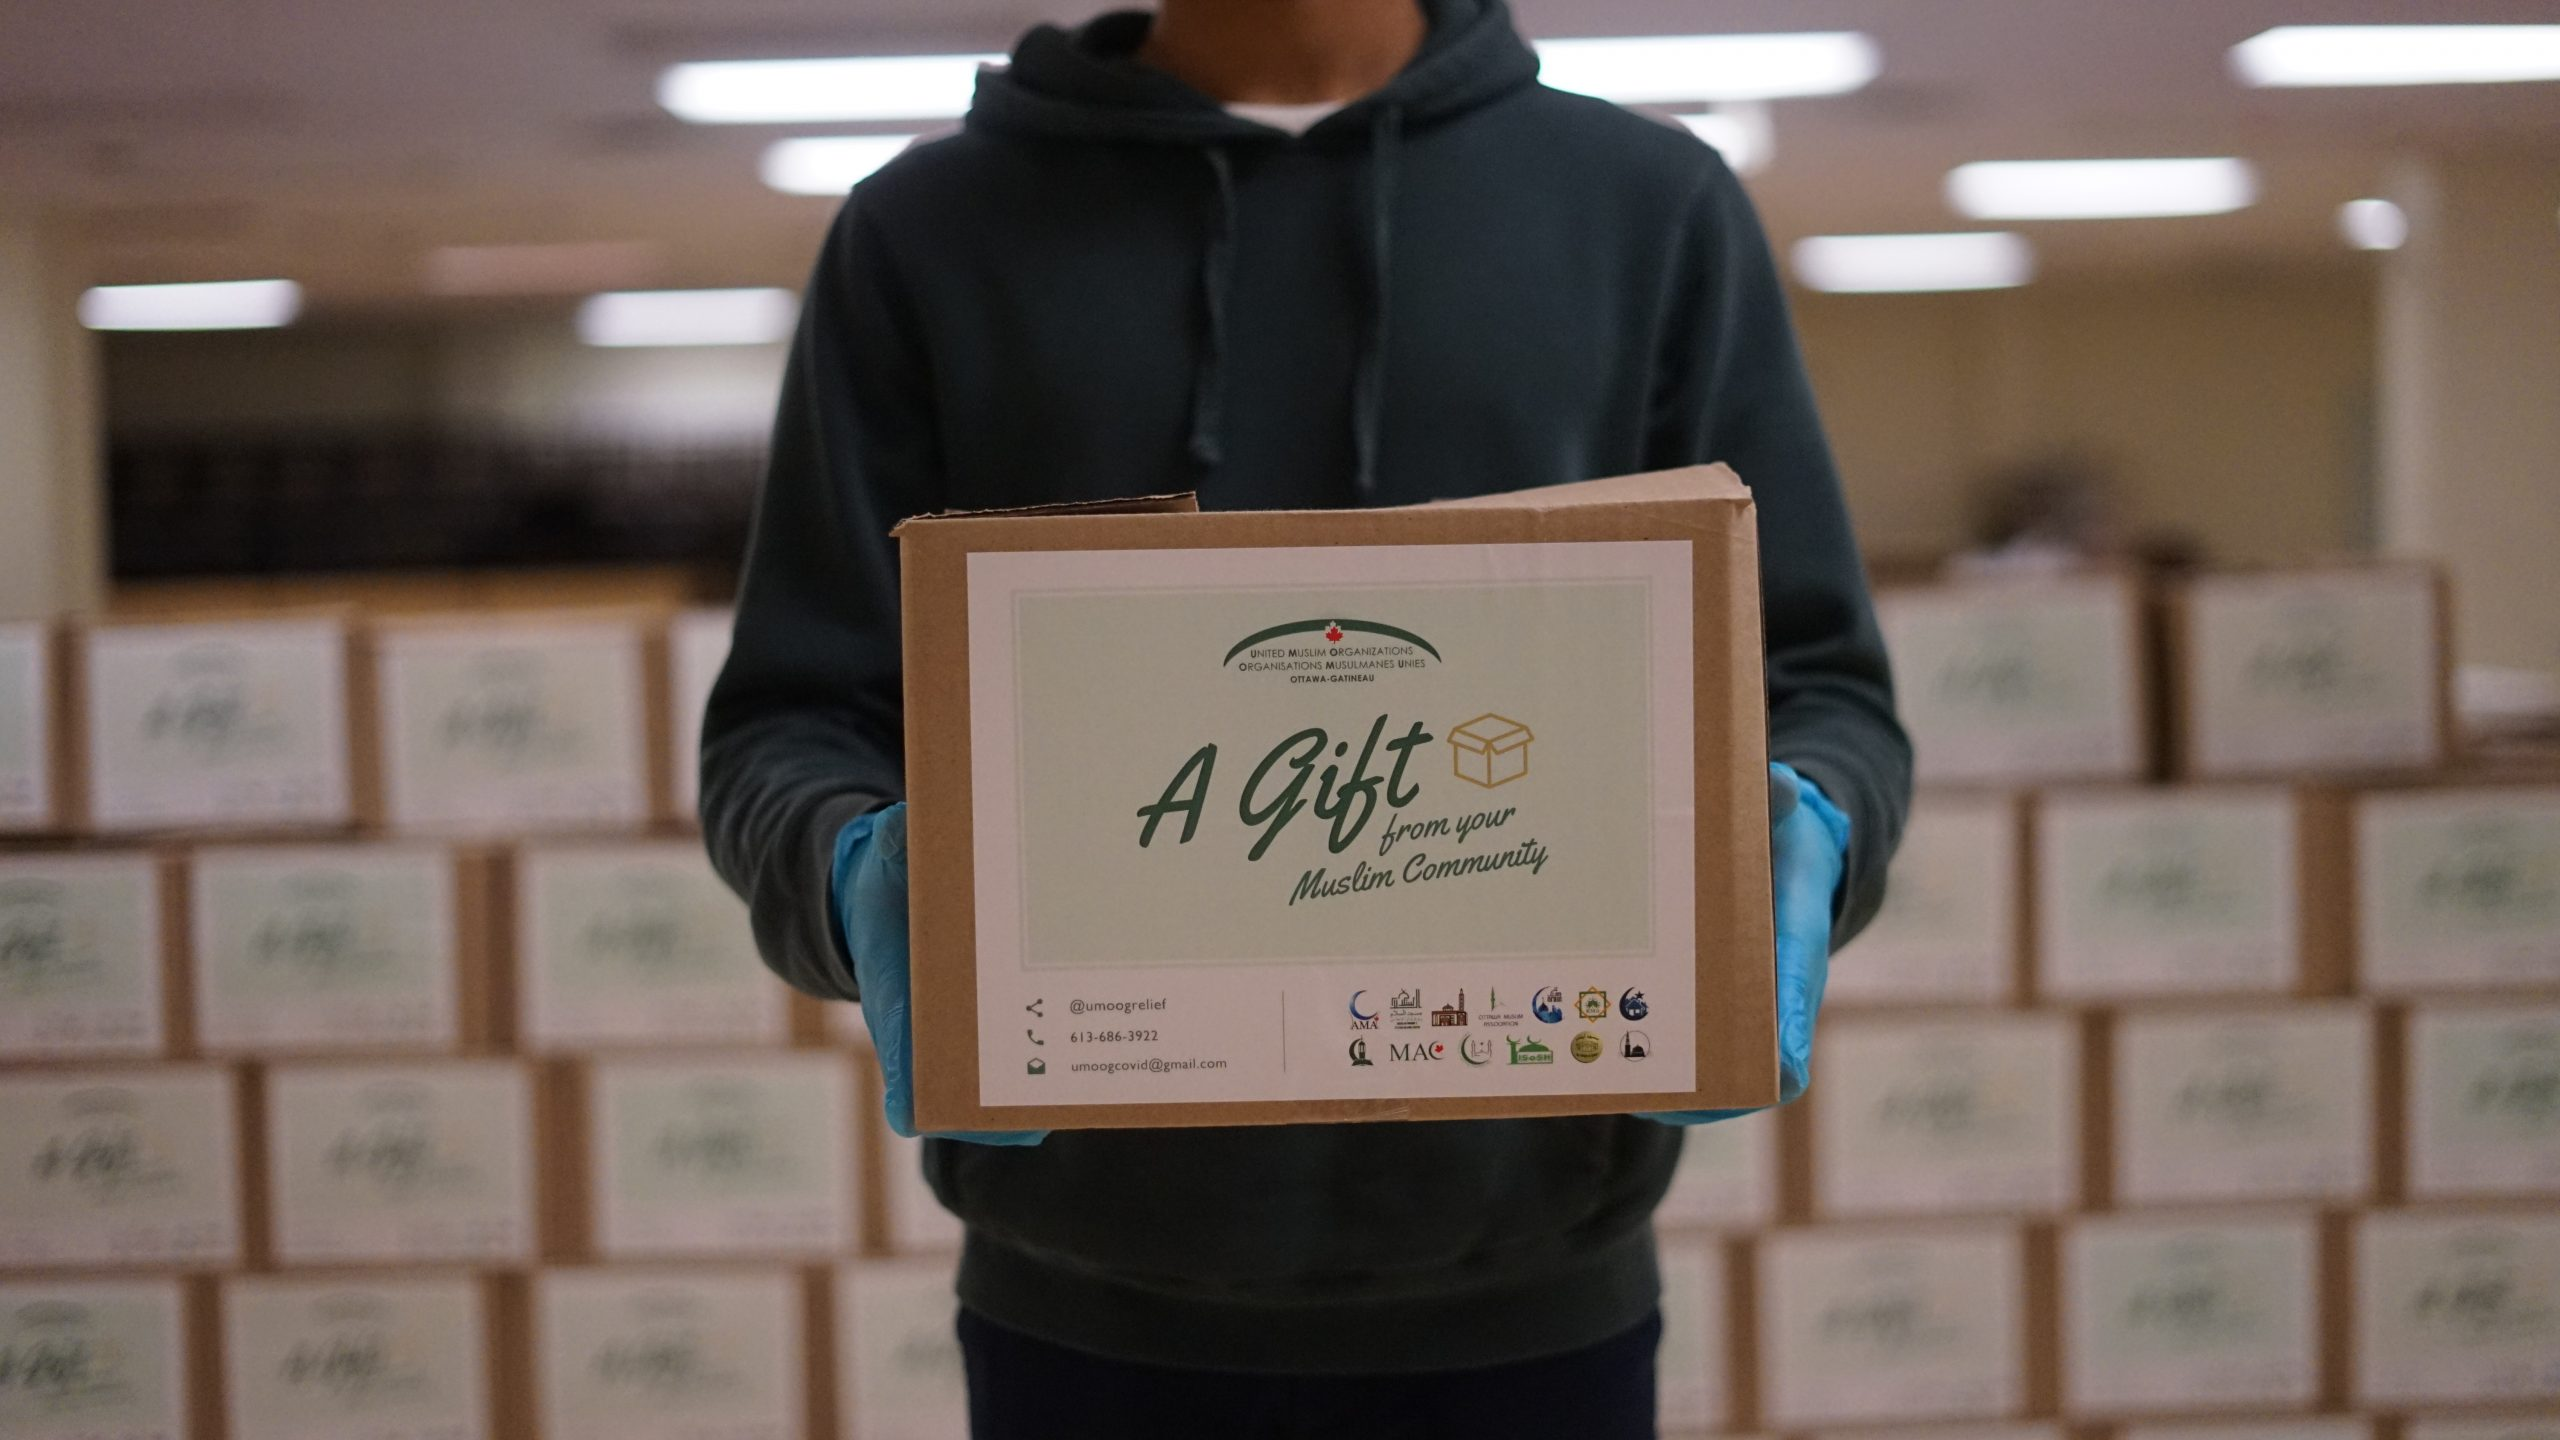 """A person holds a box filled with food that says """"A gift from your Muslim community"""""""